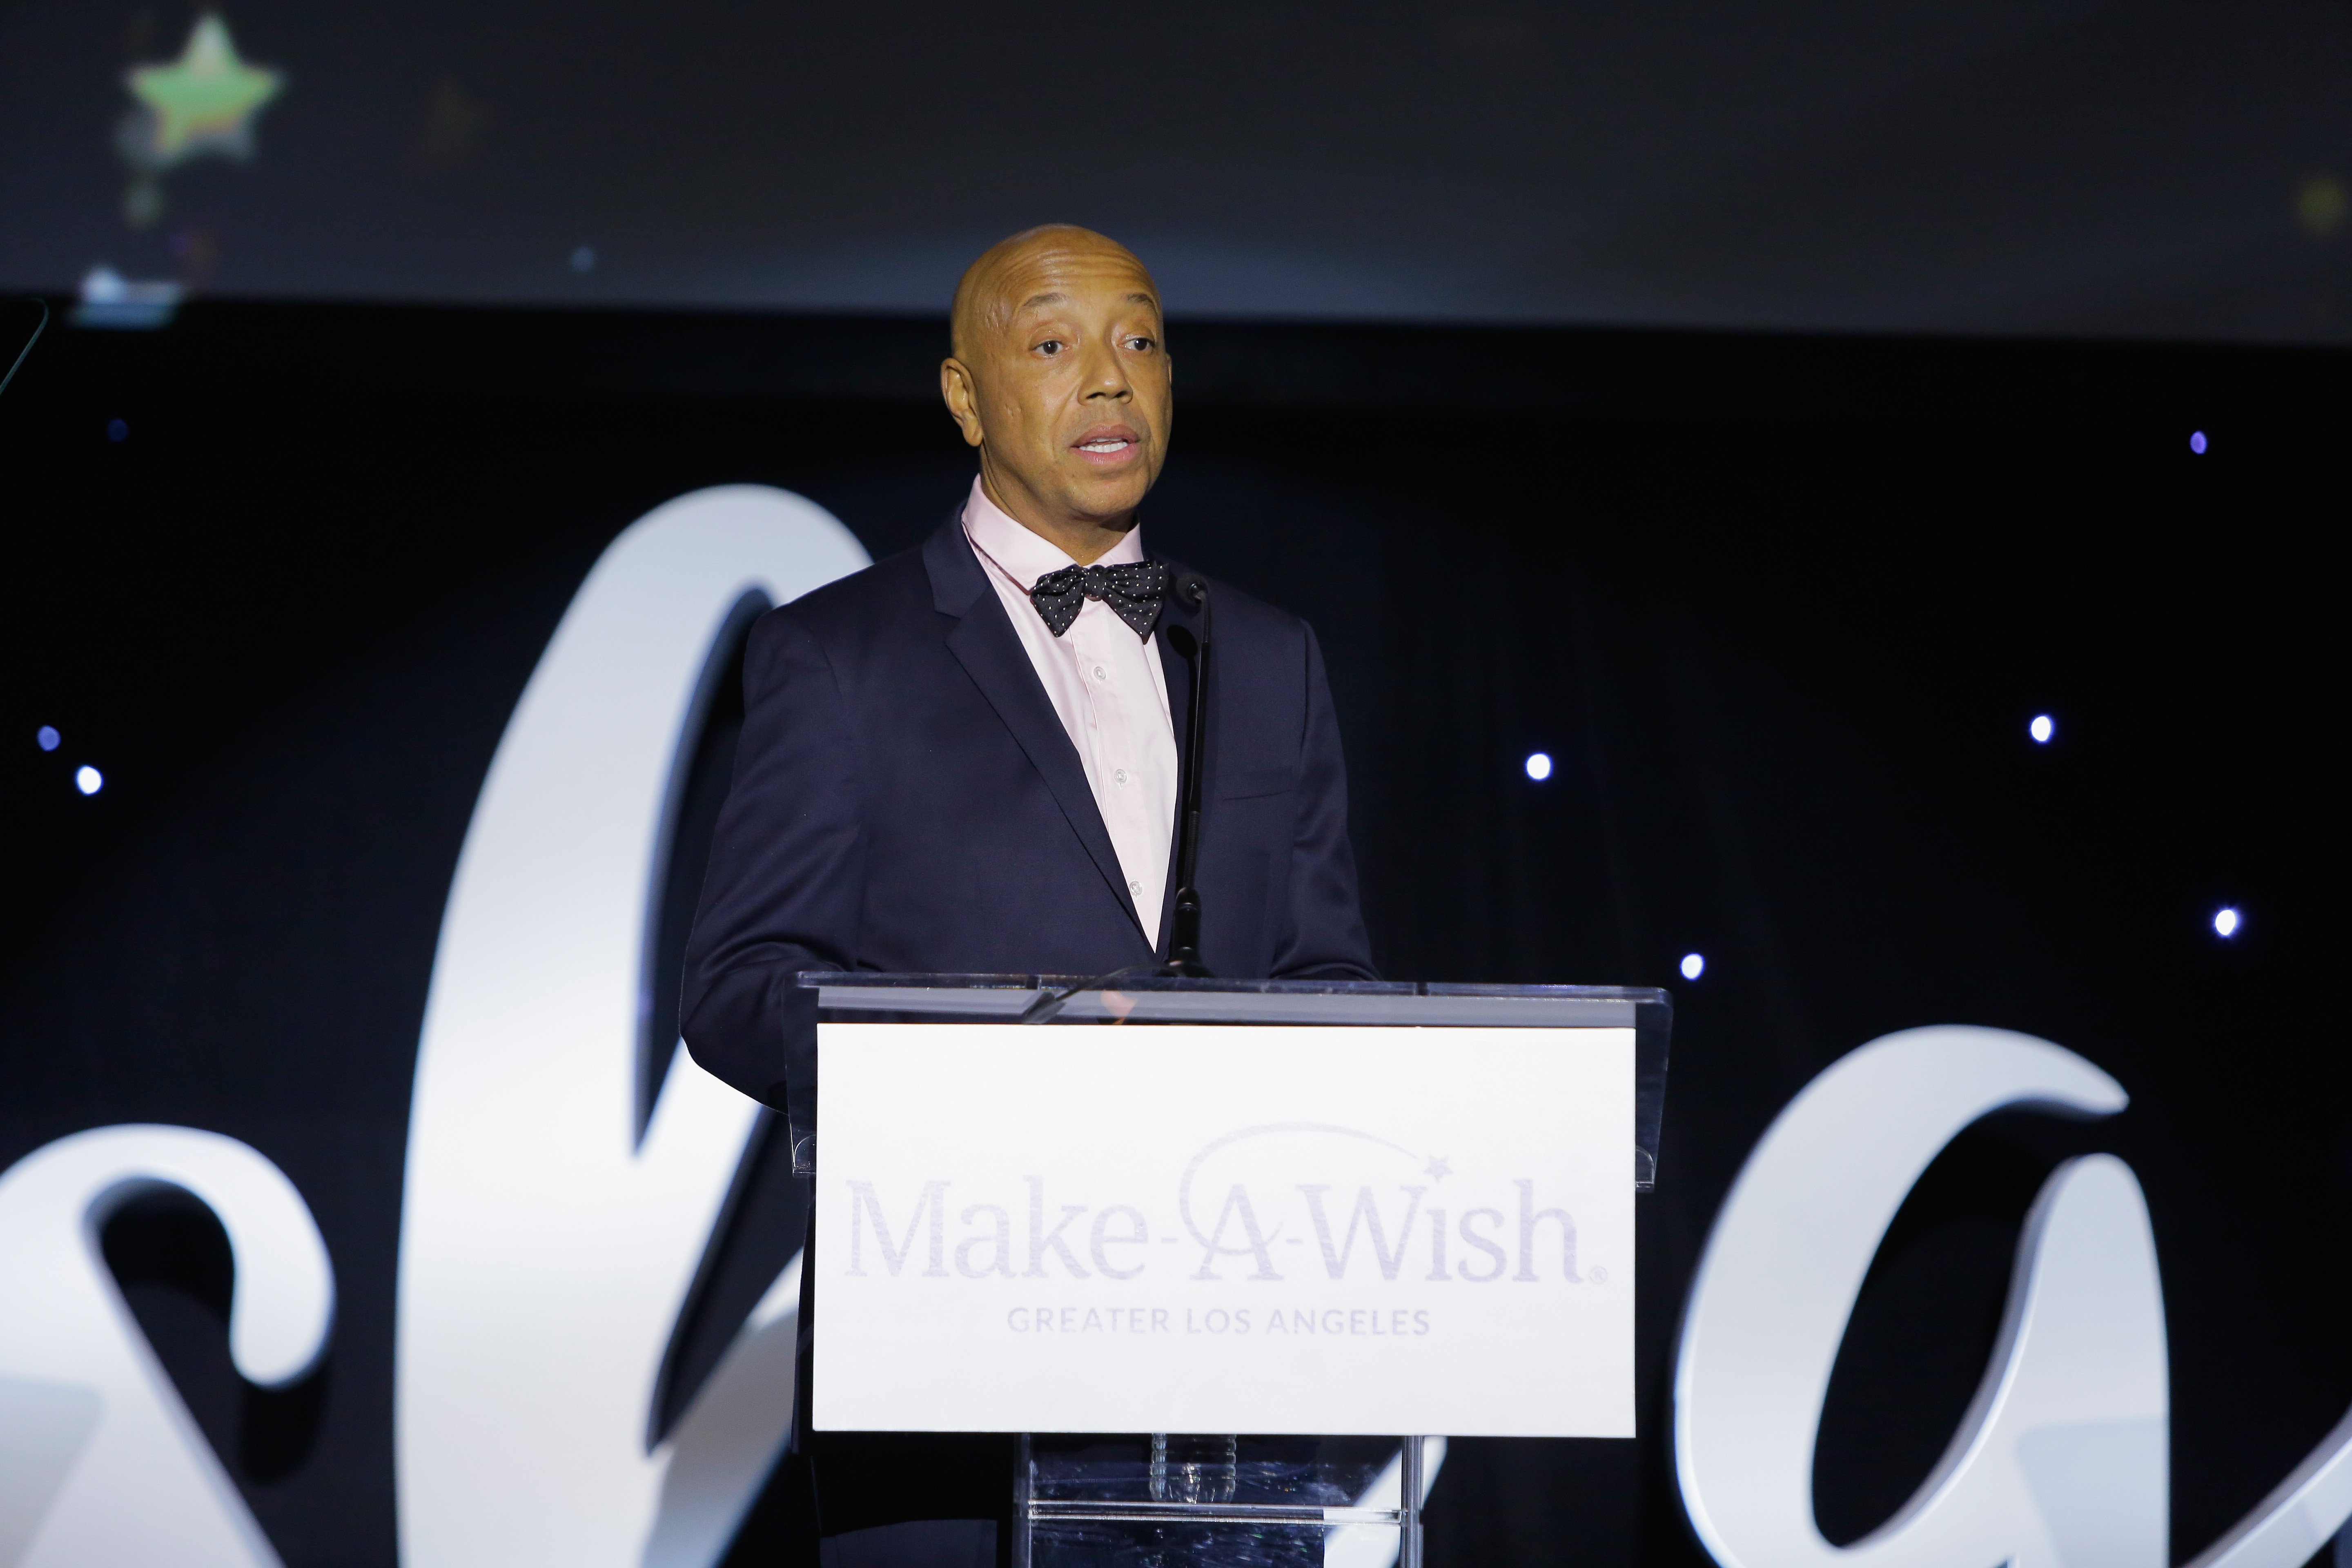 Russell Simmons at the 2017 Make a Wish Gala on Nov. 9, 2017 in California | Photo: Getty Images